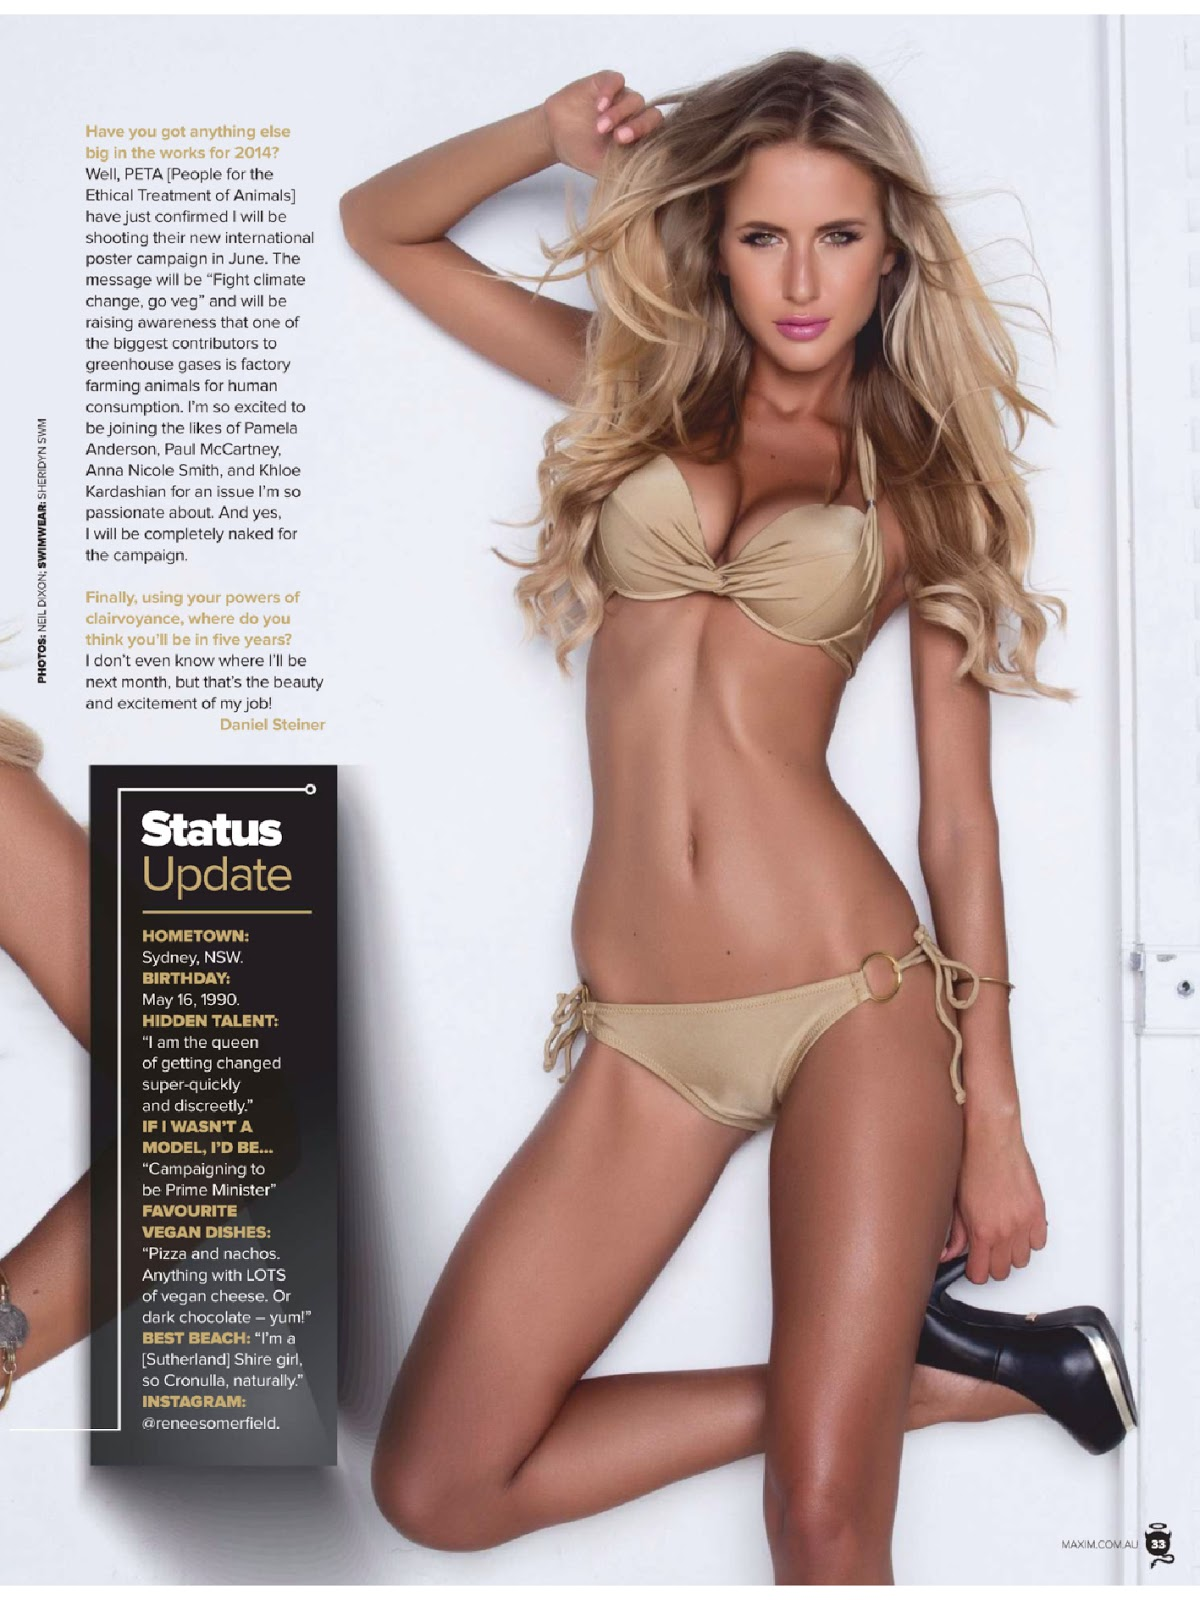 Renee Somerfield For Maxim Magazine, Australia, June 2014